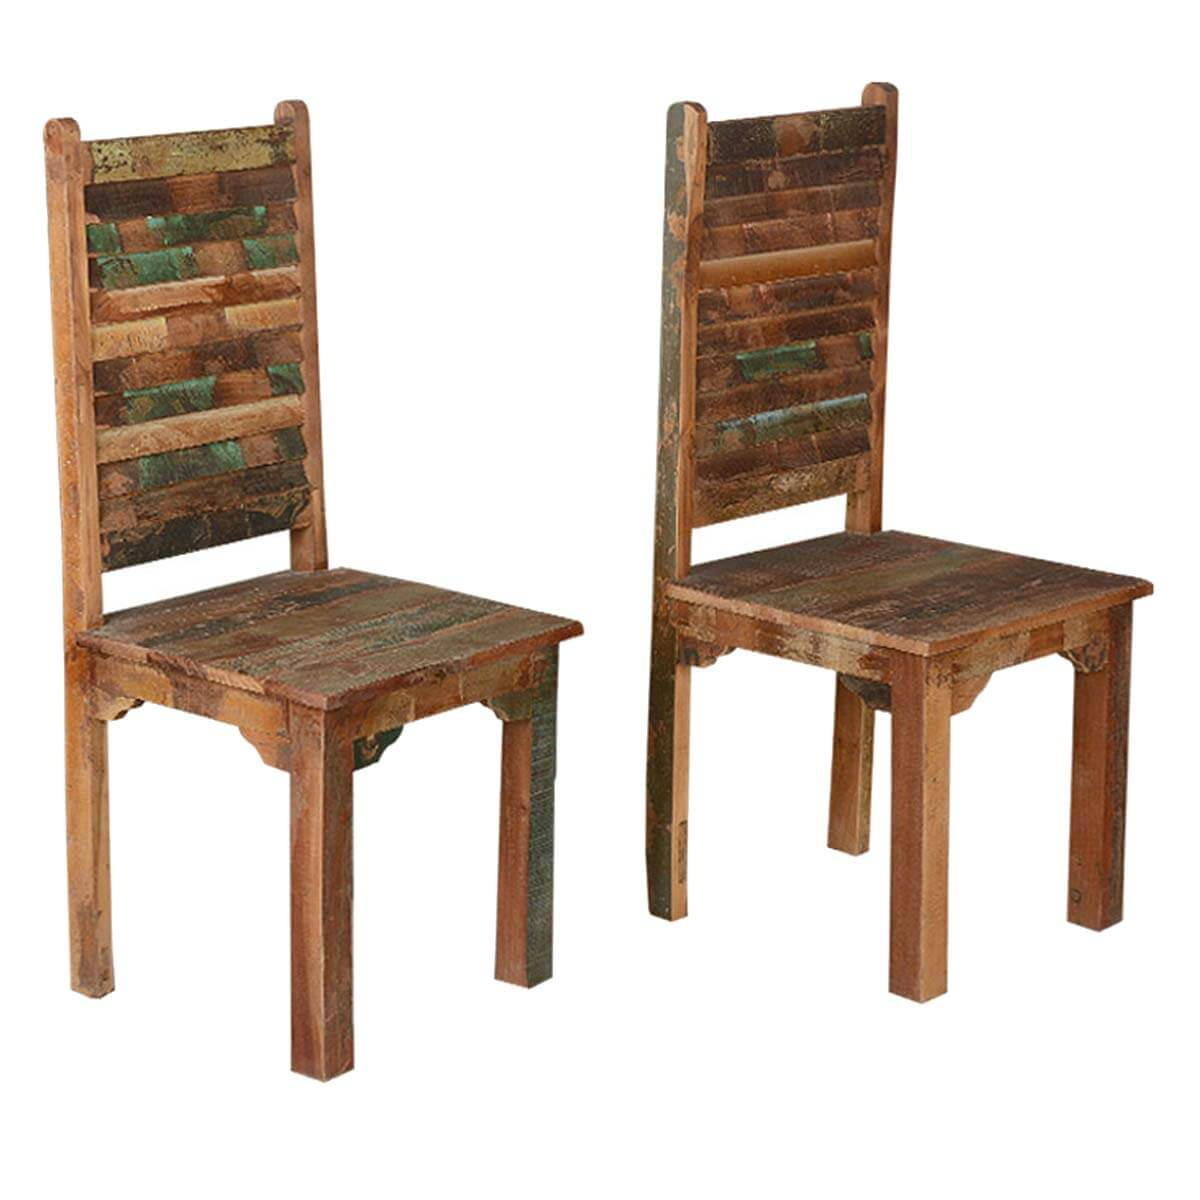 Rustic Wood Chairs Rustic Distressed Reclaimed Wood Multi Color Dining Chairs